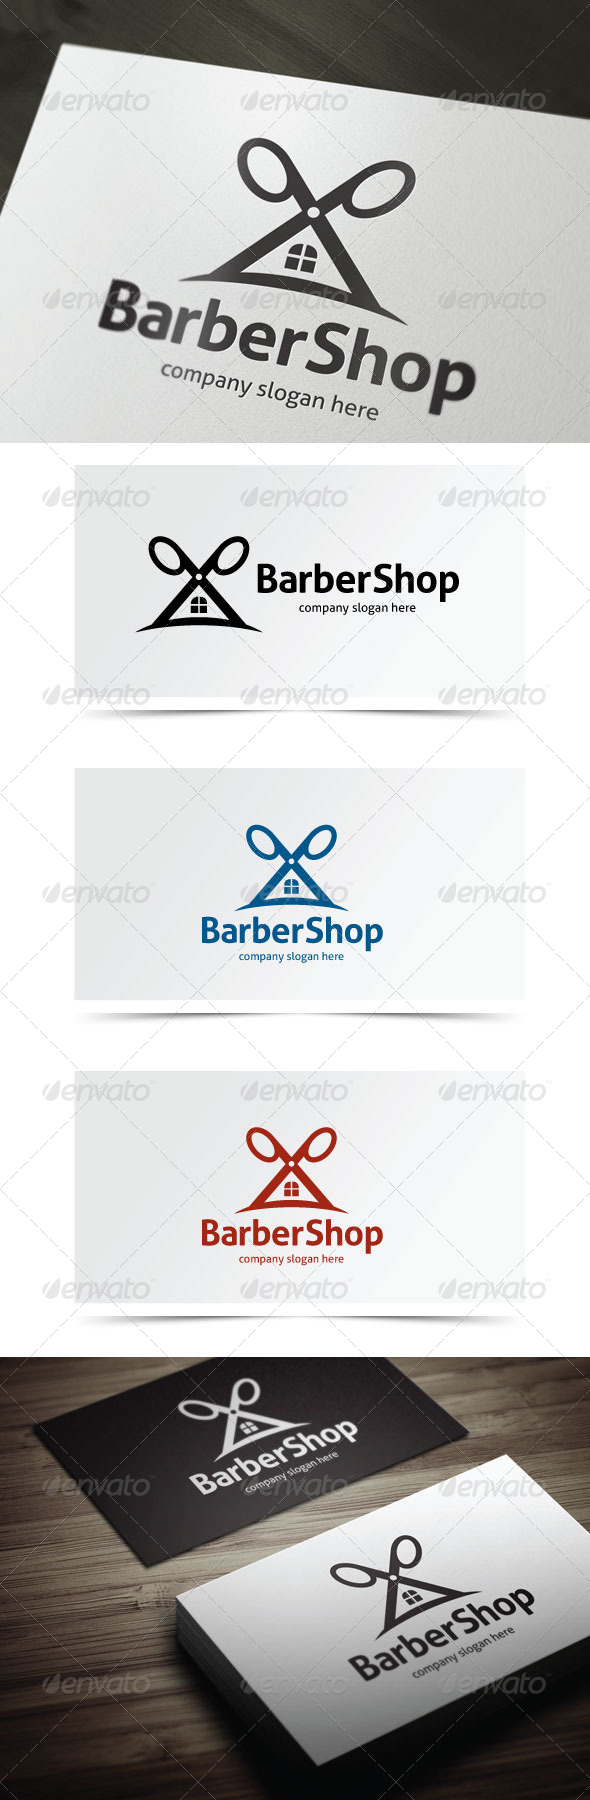 GraphicRiver Barber Shop 5638956